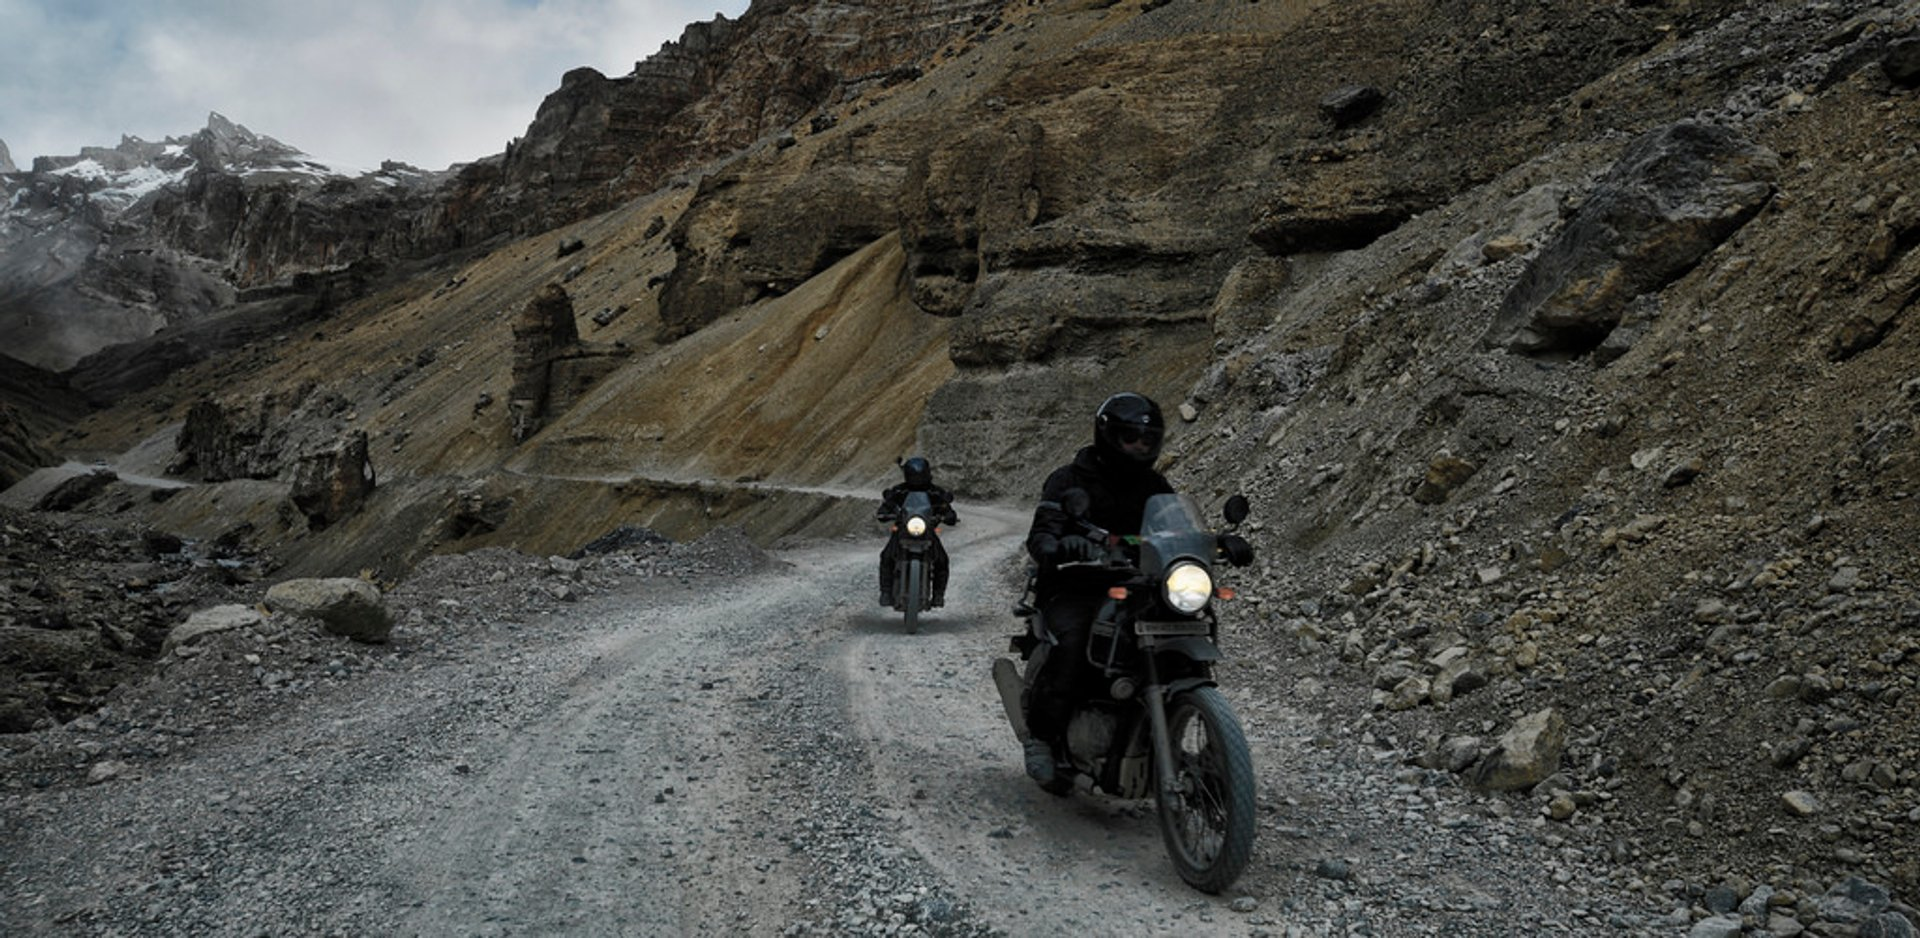 Motorcycle Trips in India - Best Season 2020